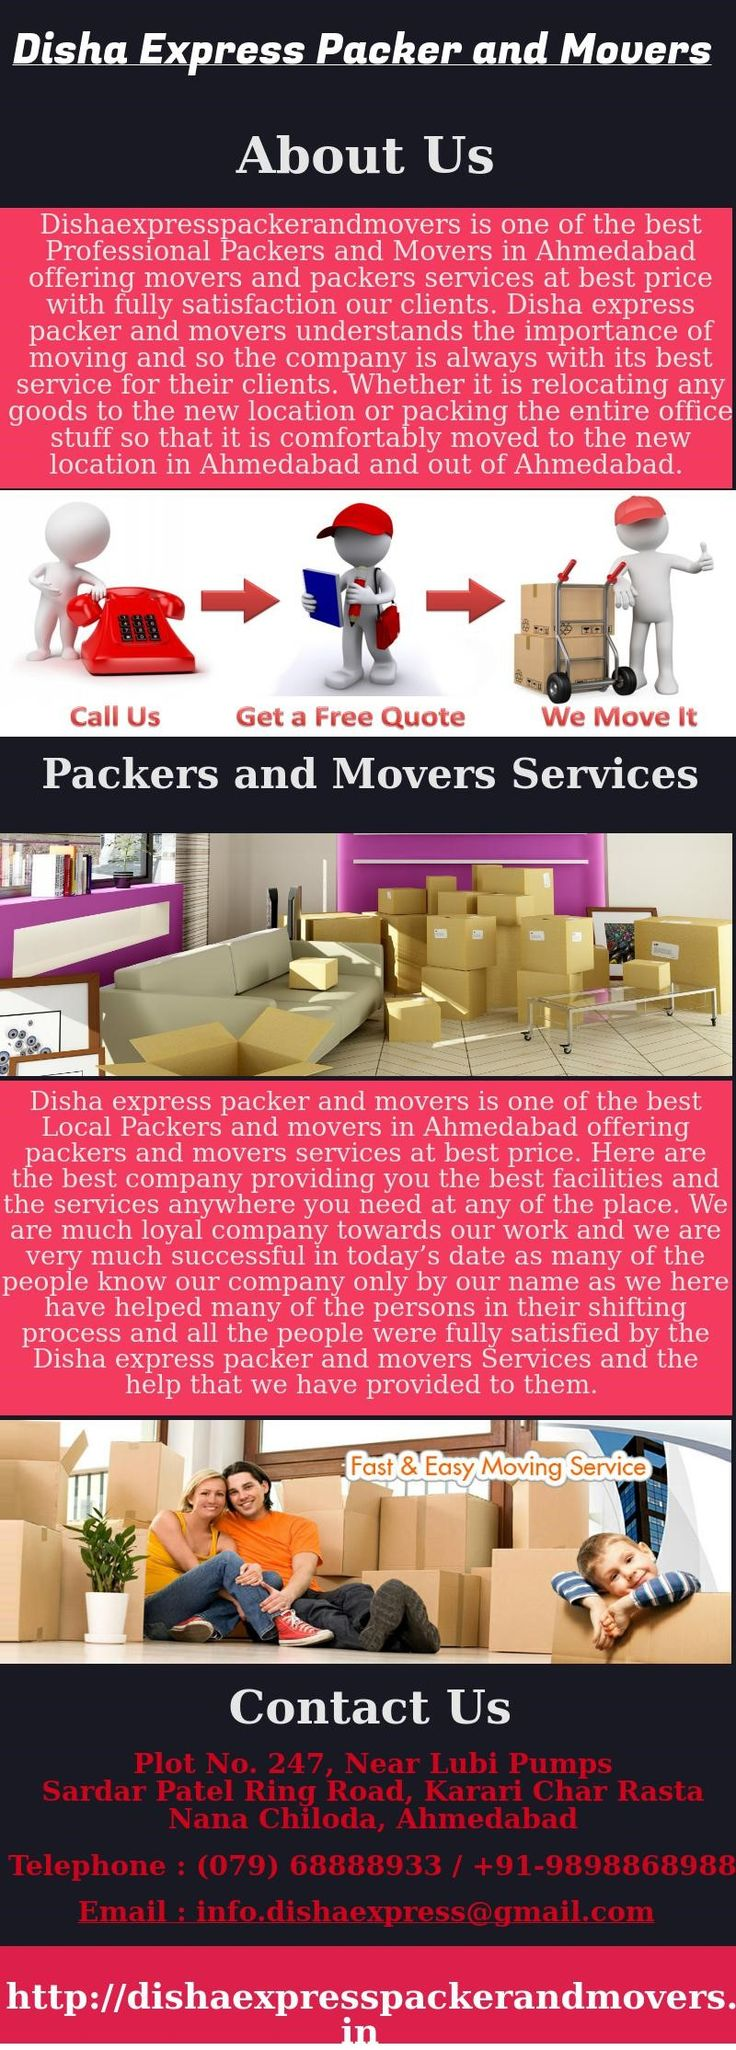 Dishaexpresspackerandmovers is one of the best professional movers and packers in Ahmedabad. If you are looking to move to or from ahmedabad then choose reliable local packers and movers. We provide quality of service including household shifting, office shifting, loading and unloading service at affordable cost of price. We also provide corporate moving service, moving and storage service in Ahmedabad.